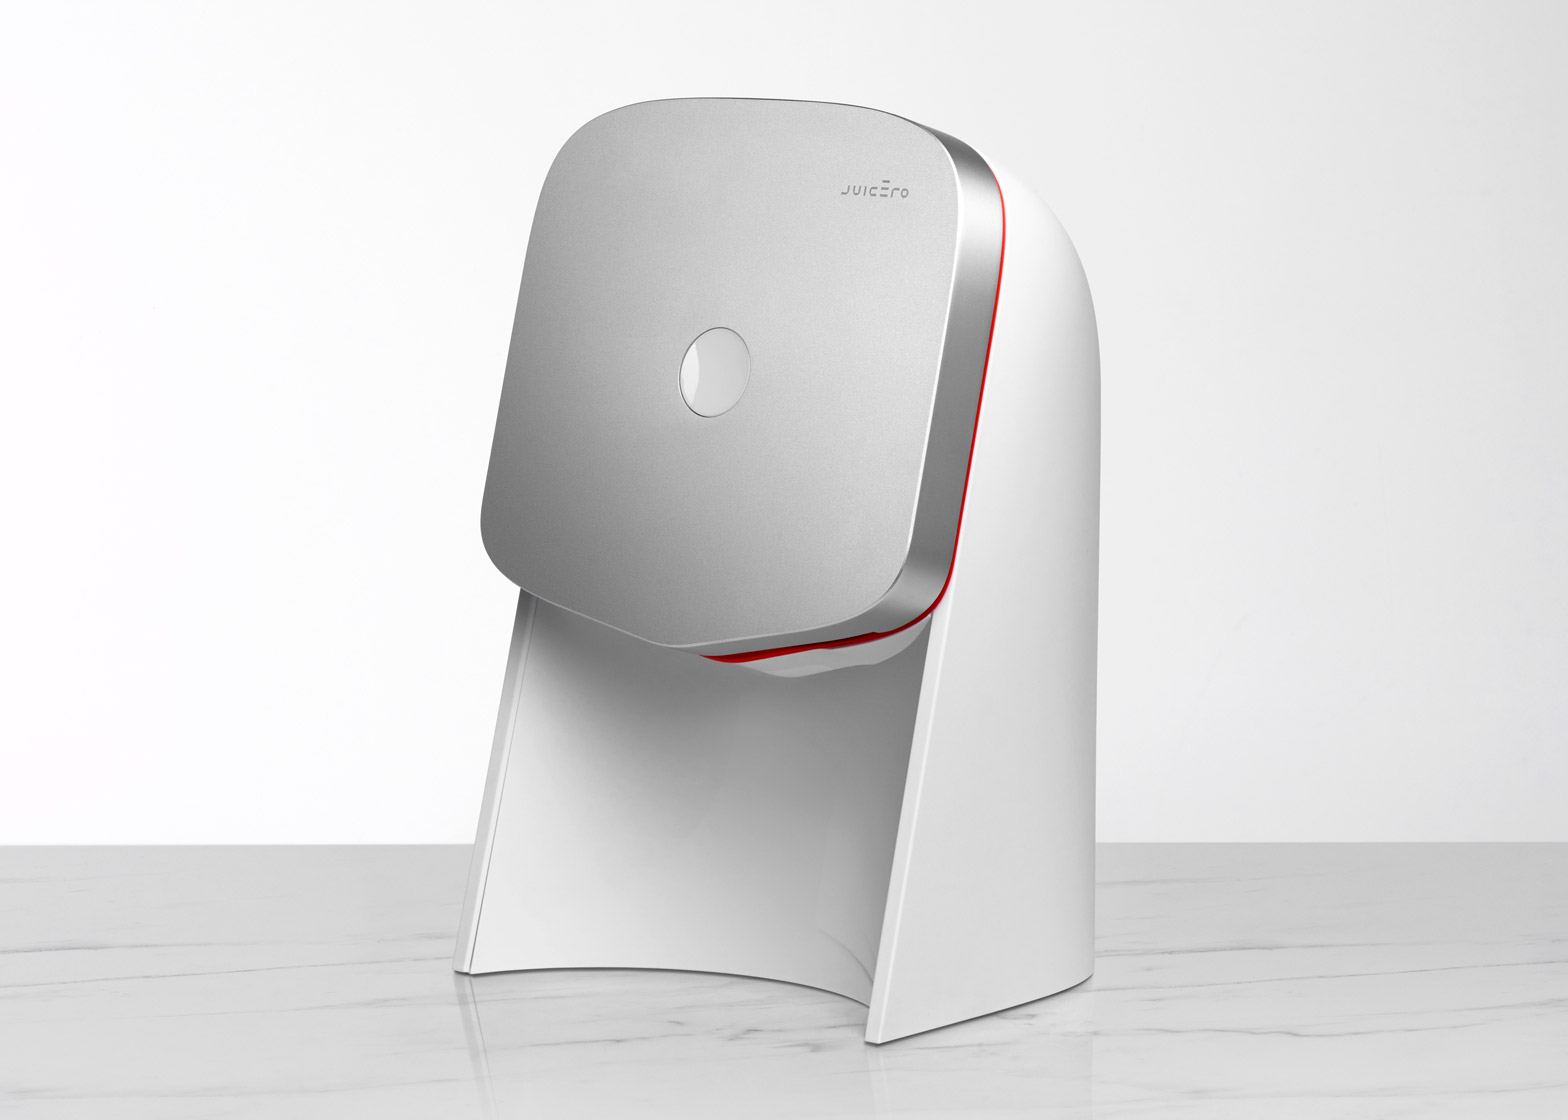 Yves Behar's Juicero juicer has its reputation shredded by social media